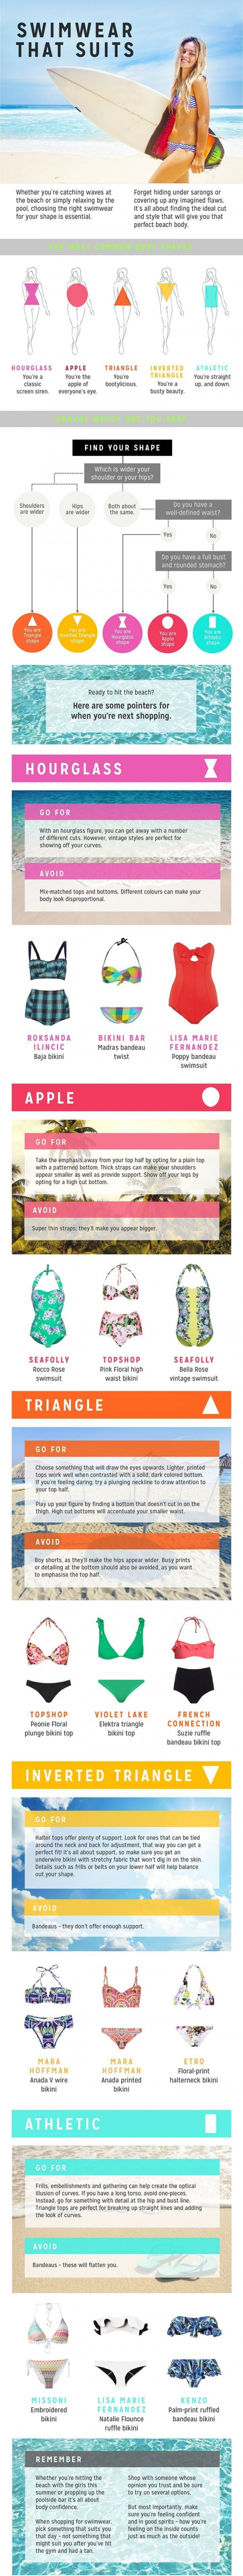 The Best Bathing Suits for All Body Types